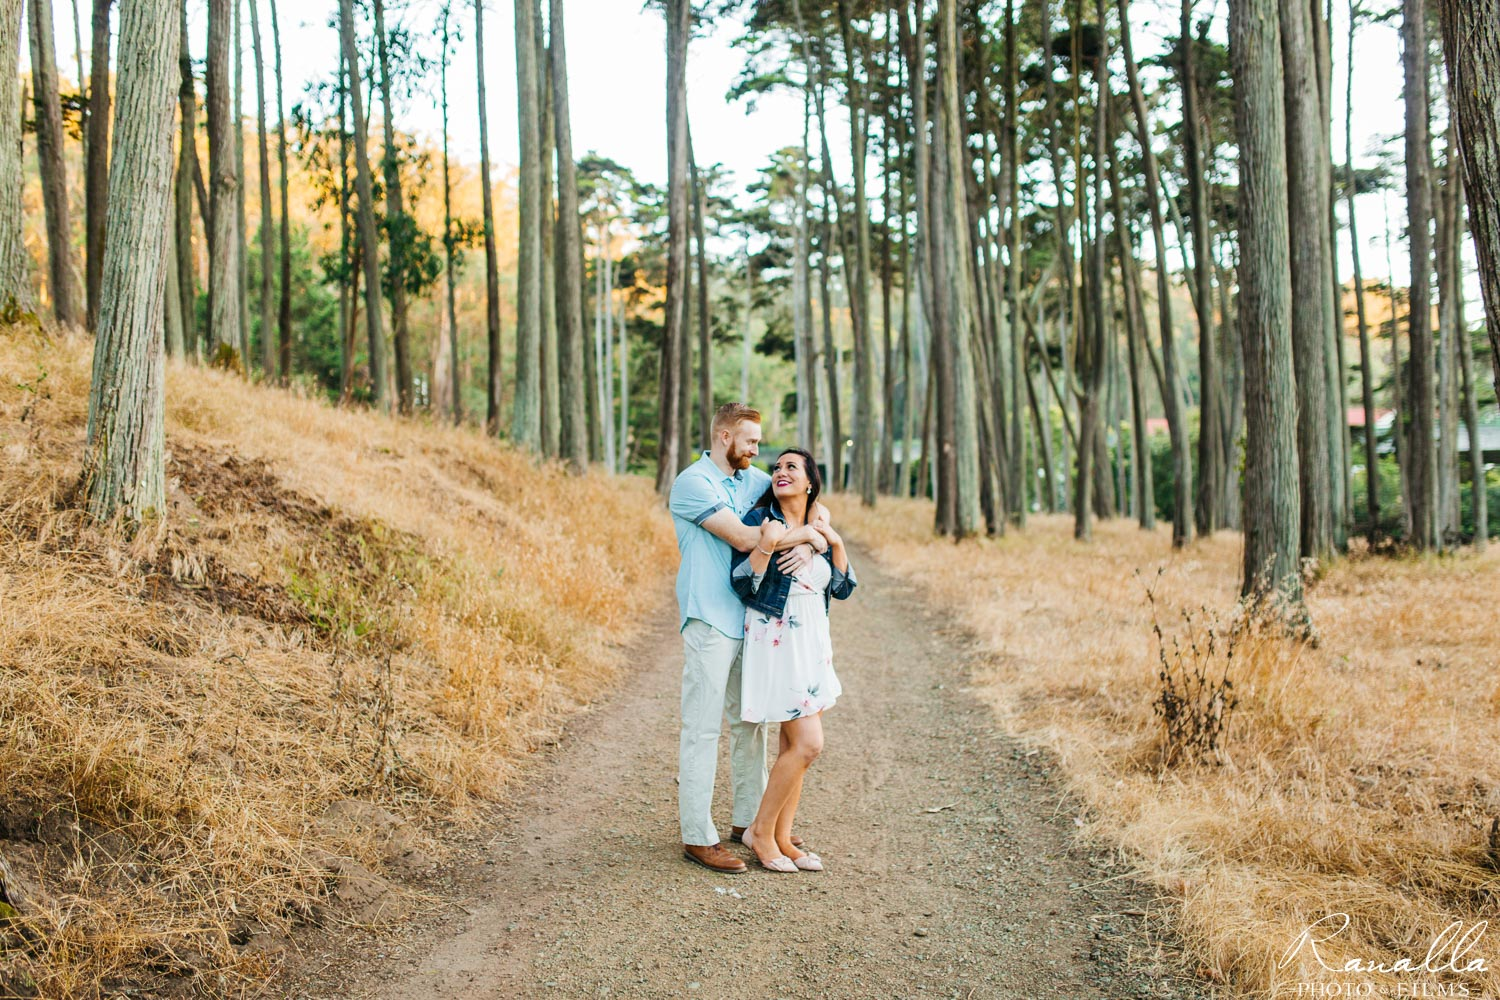 San Francisco Engagement Photos-Ranalla Photo & Films-Presidio